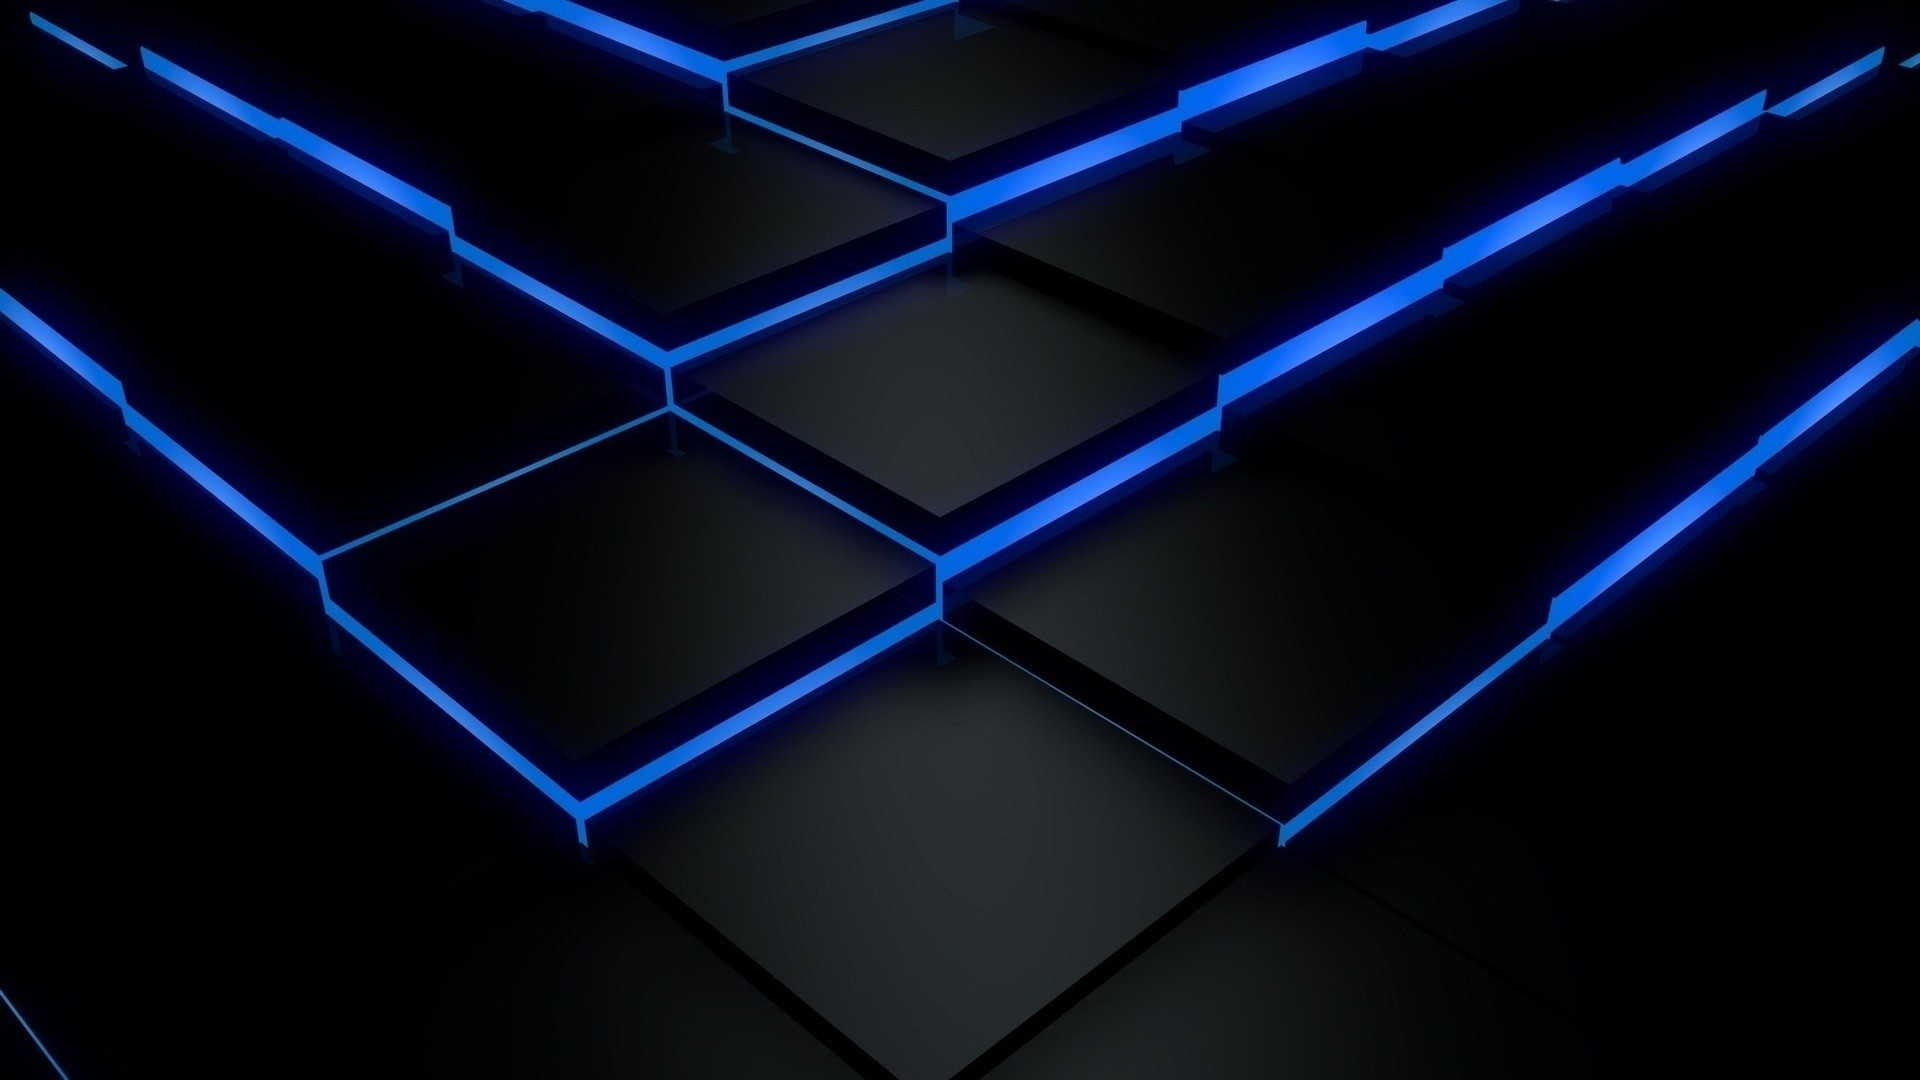 Black And Blue a wallpaper